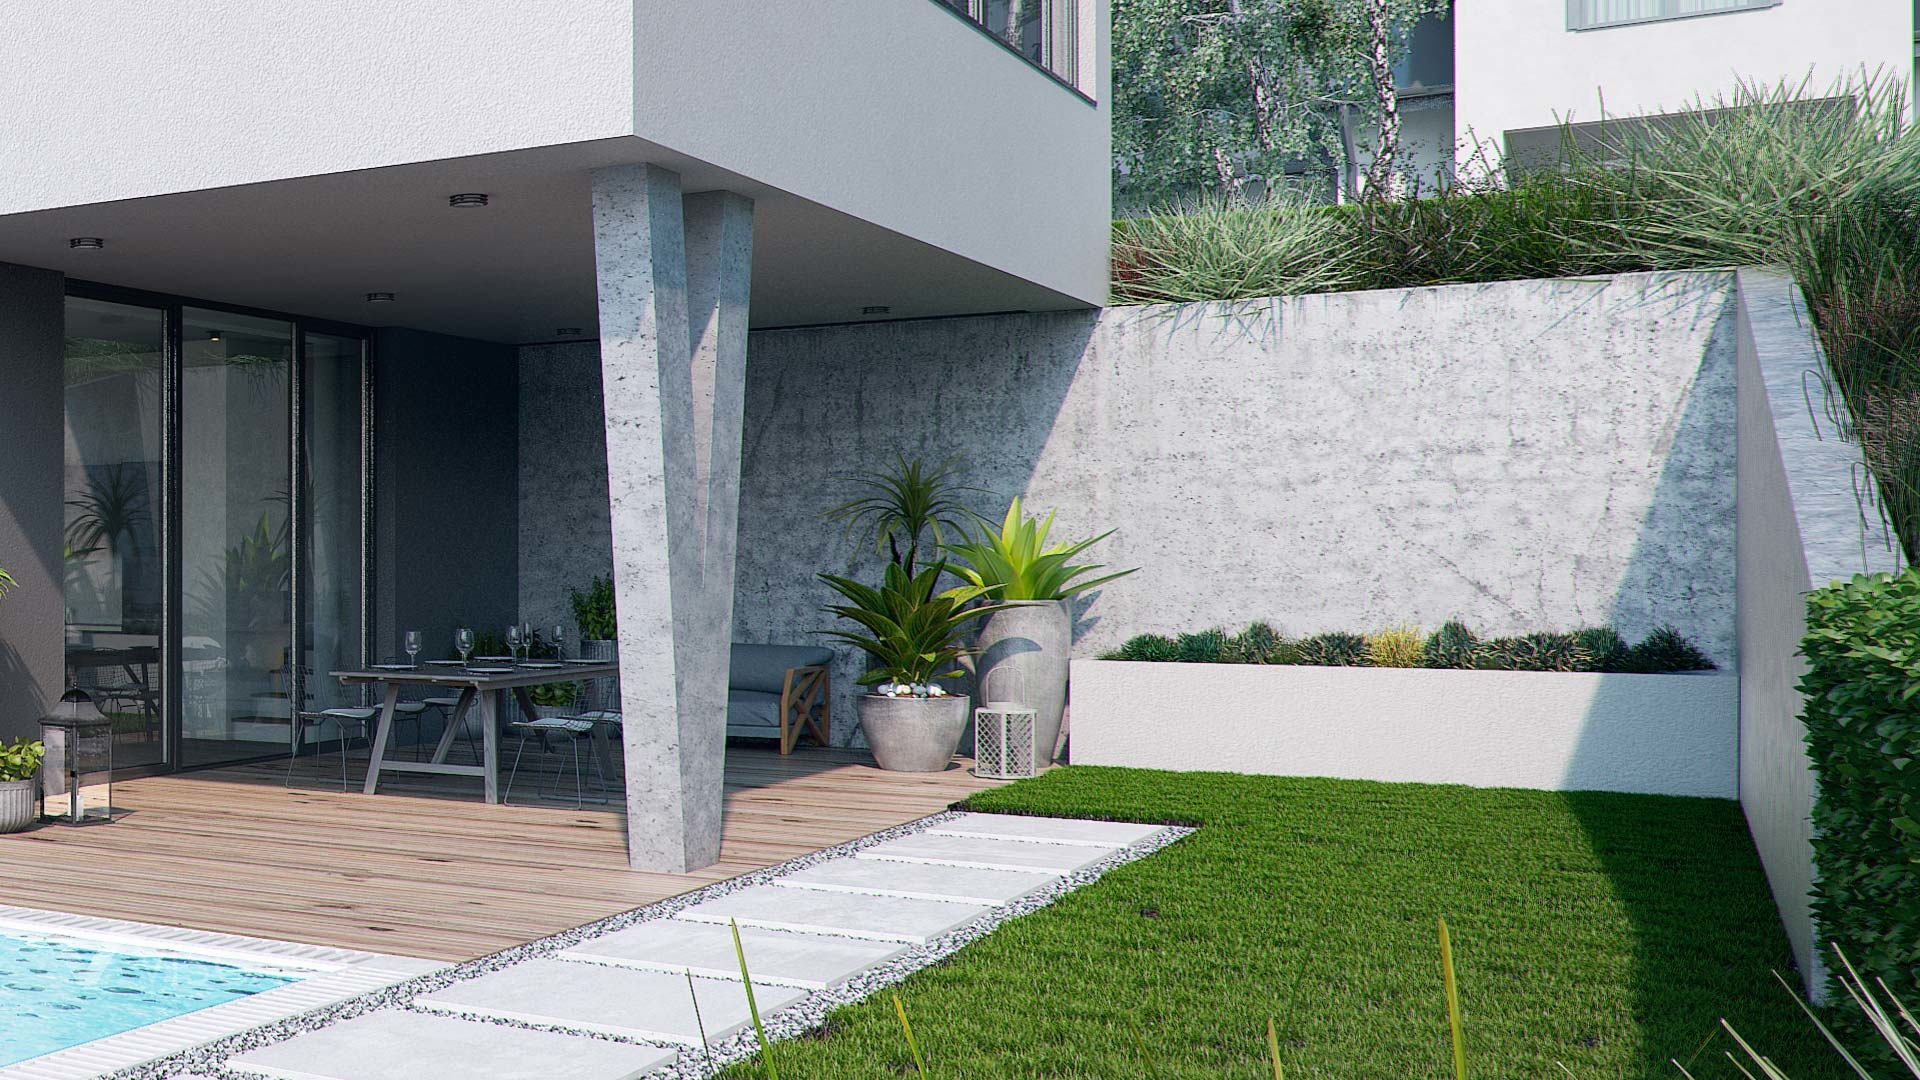 3D visualisation of the house in Walding, Austria- backyard view